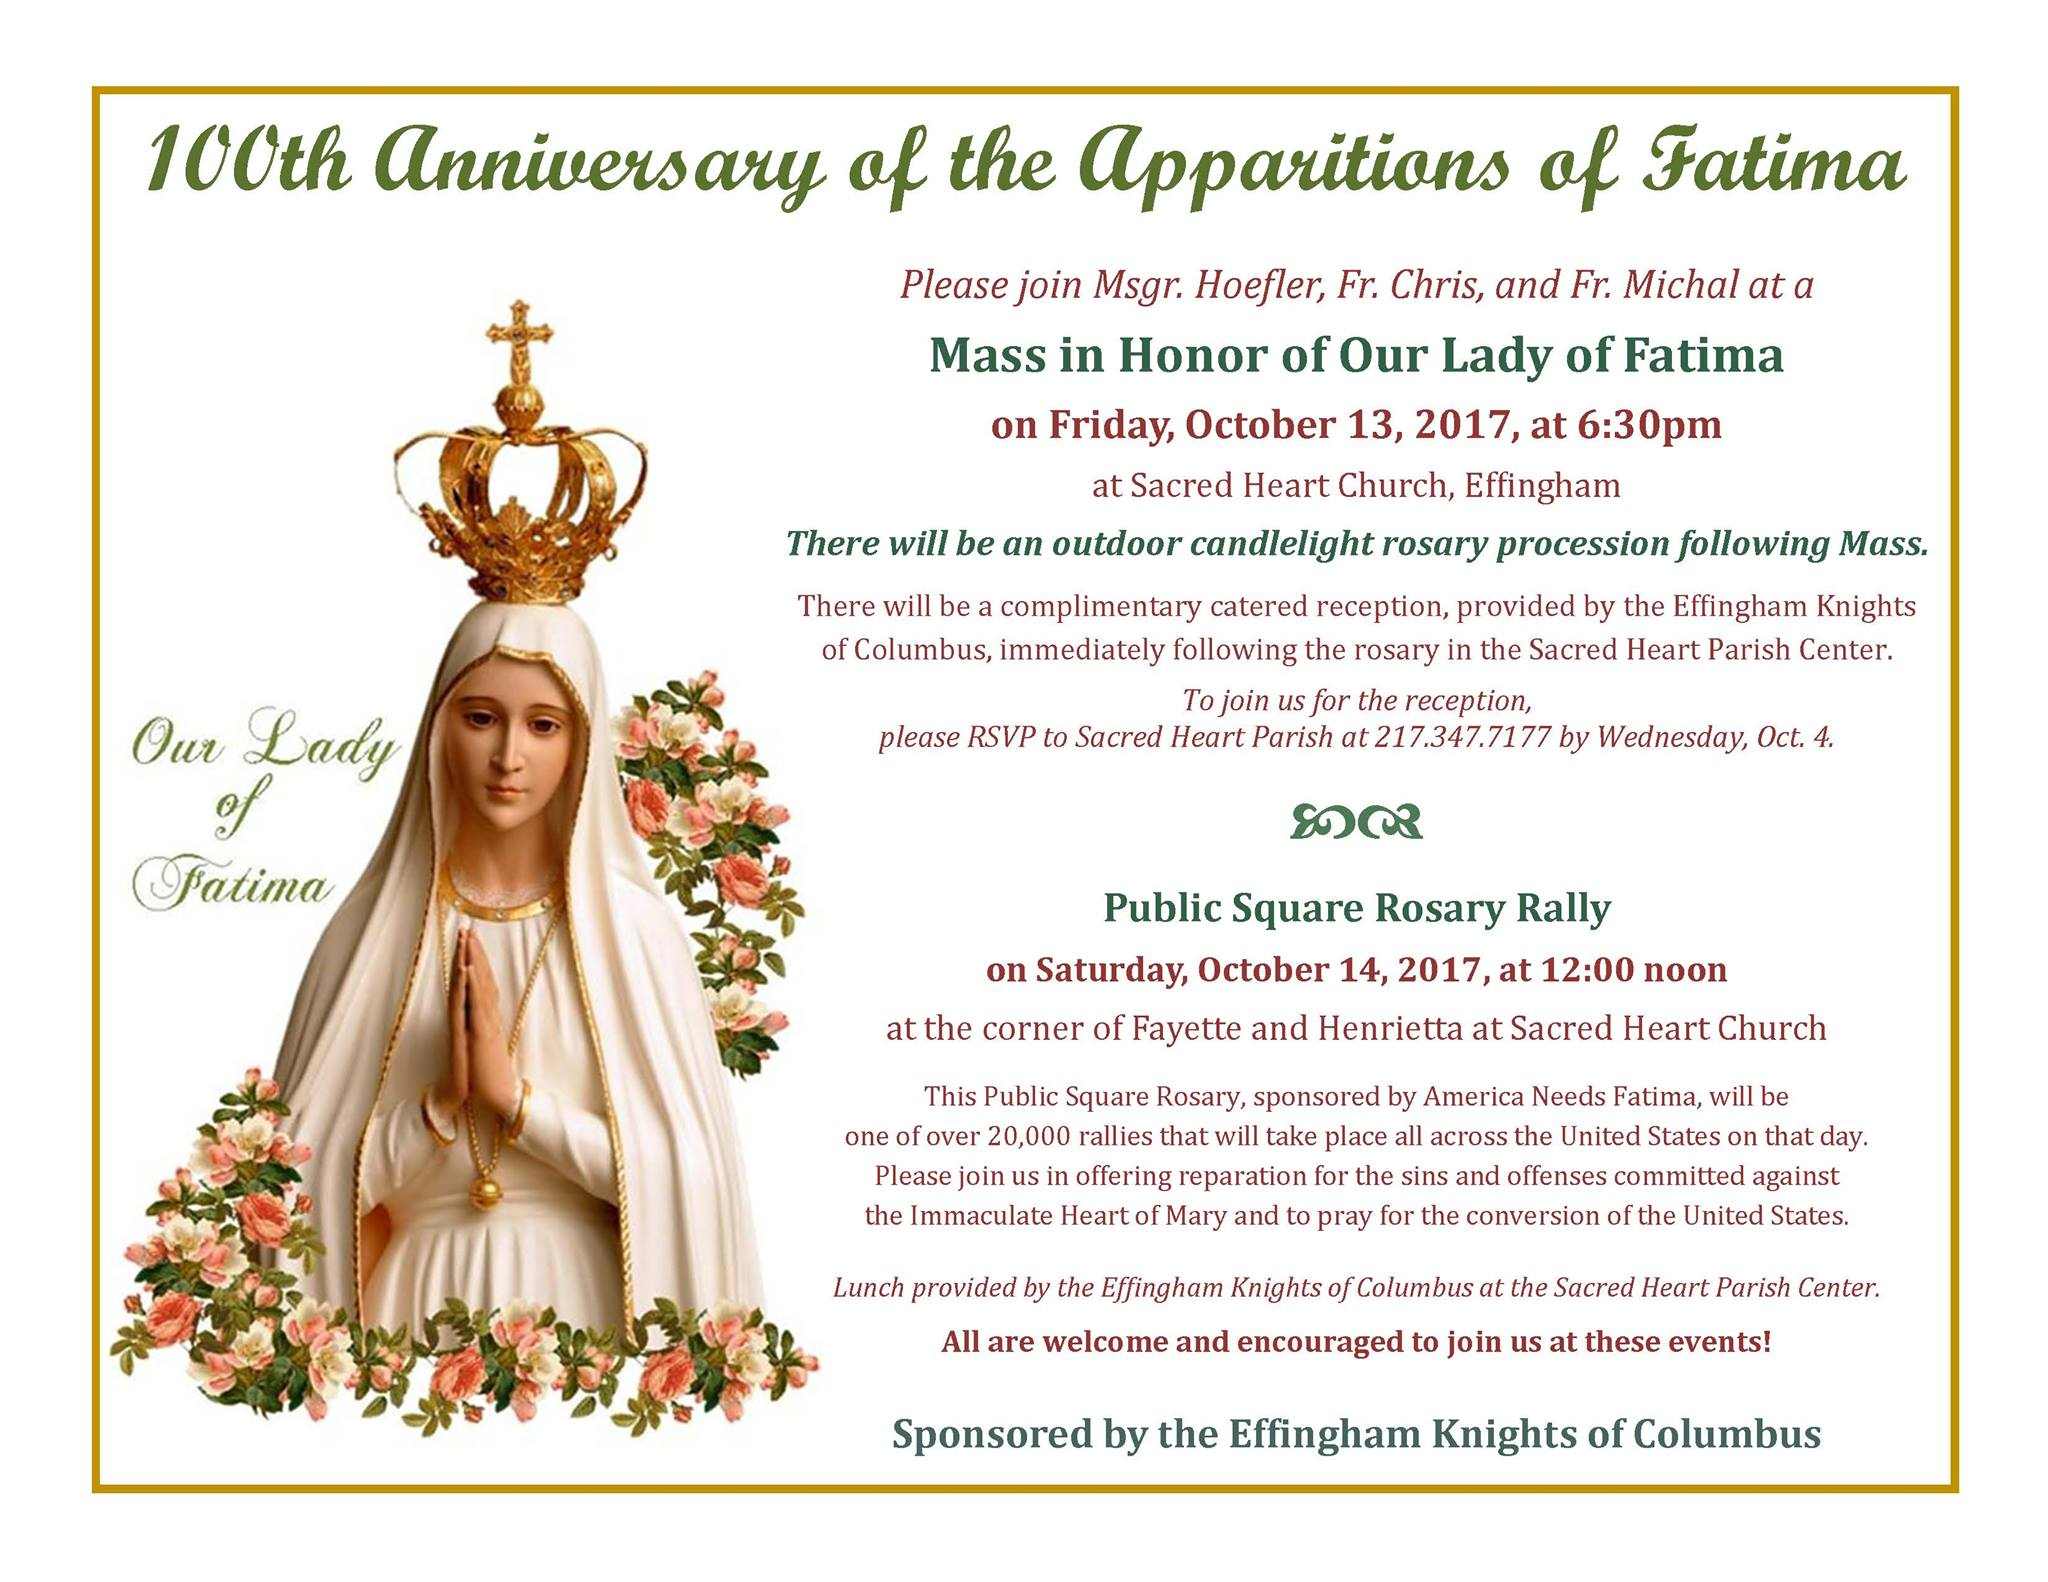 100th Anniversary Celebration of The Apparitions of Fatima Event Set For This Weekend